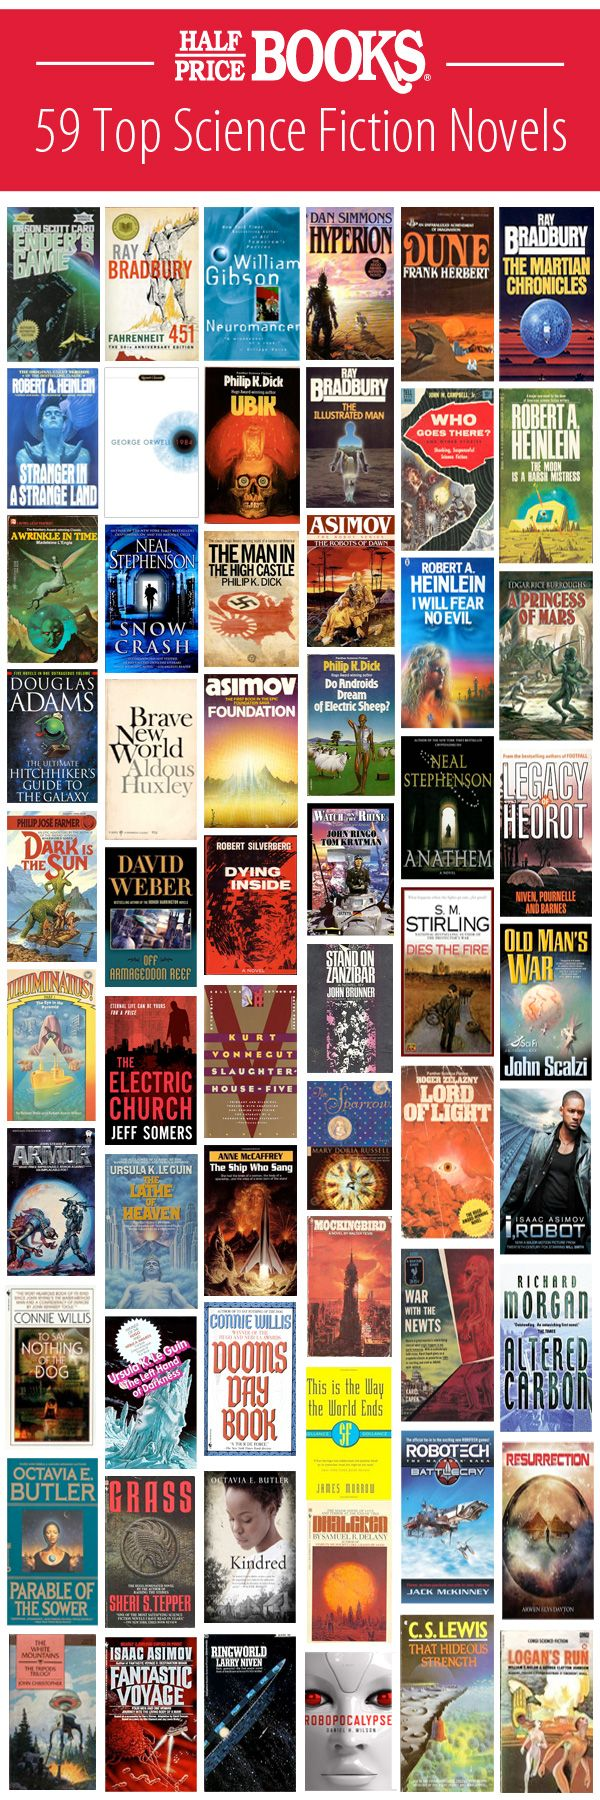 Best Science Fiction Novels, compiled by Half Price Books employees! HPB.com